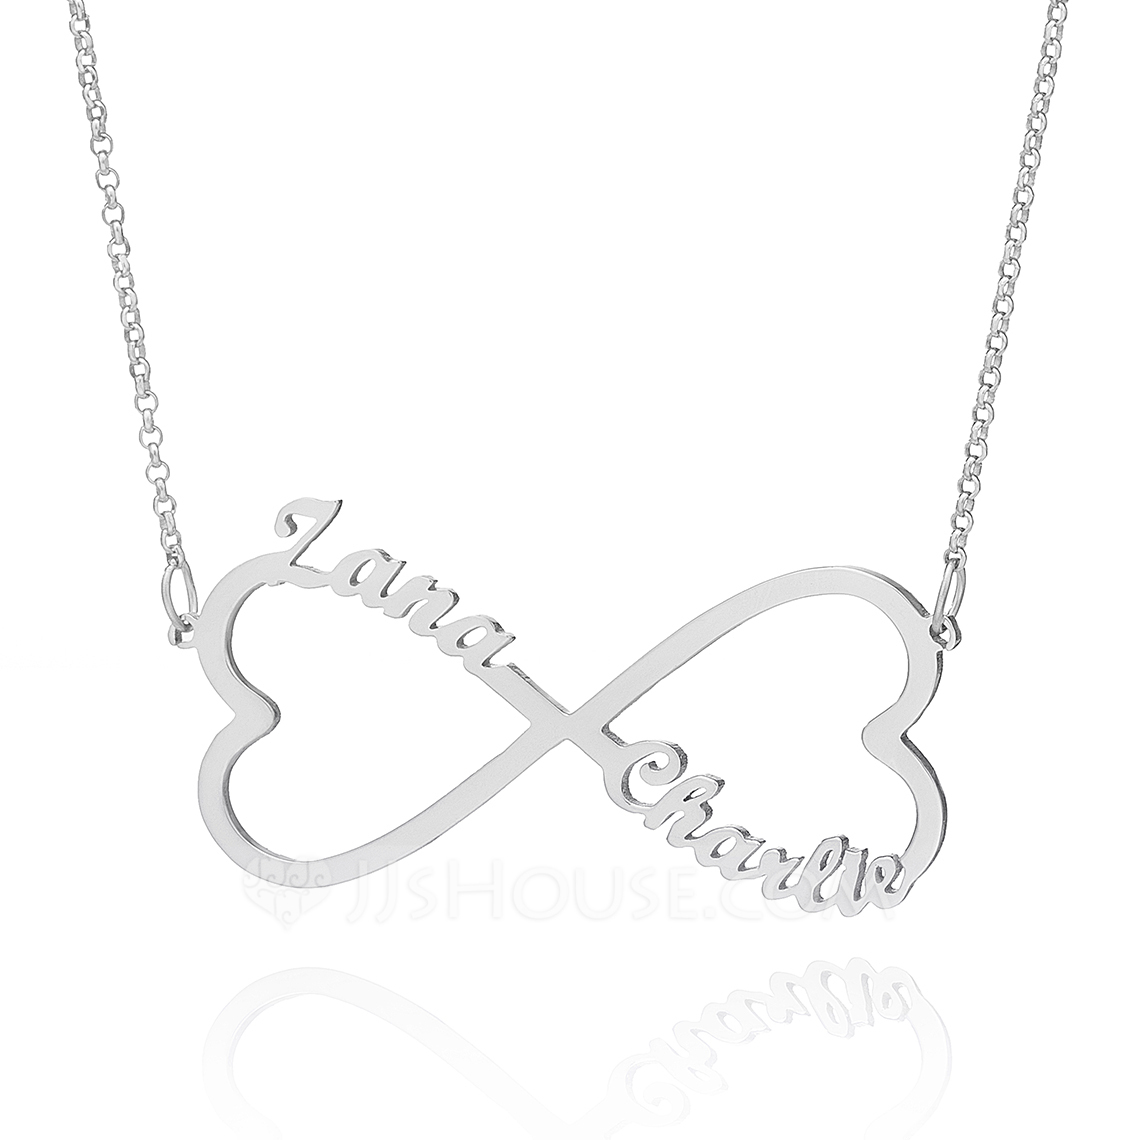 Custom Sterling Silver Infinity Two Name Necklace With Heart - Birthday Gifts Mother's Day Gifts